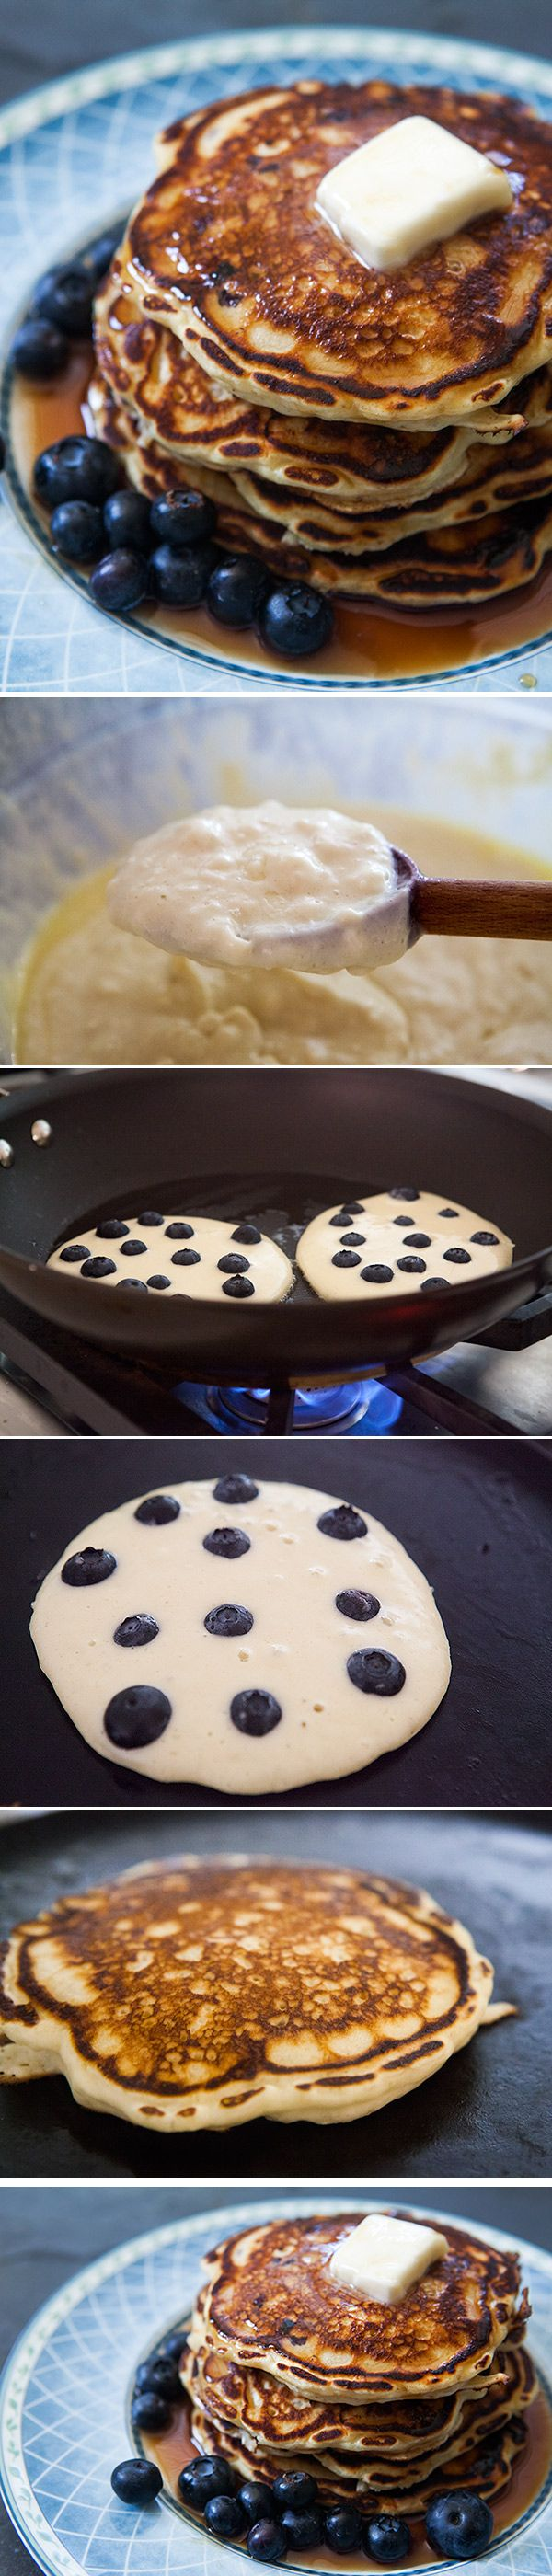 Blueberry Buttermilk Pancakes ~ Light and fluffy buttermilk pancakes loaded with blueberries! So easy, the perfect #NewYears pancake breakfast! ~ SimplyRecipes.com